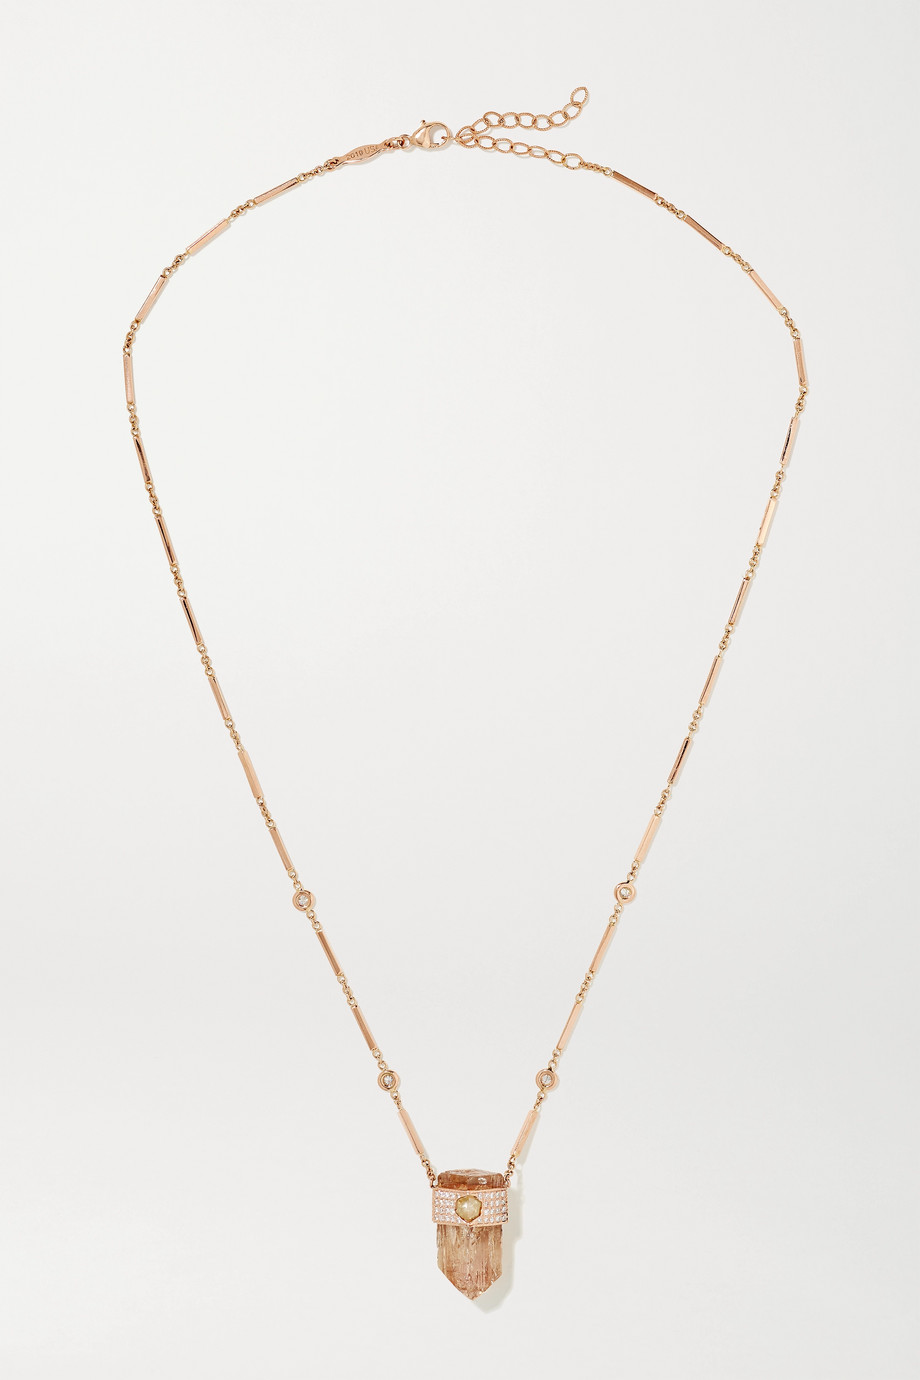 JACQUIE AICHE 14-karat rose gold, topaz and diamond necklace